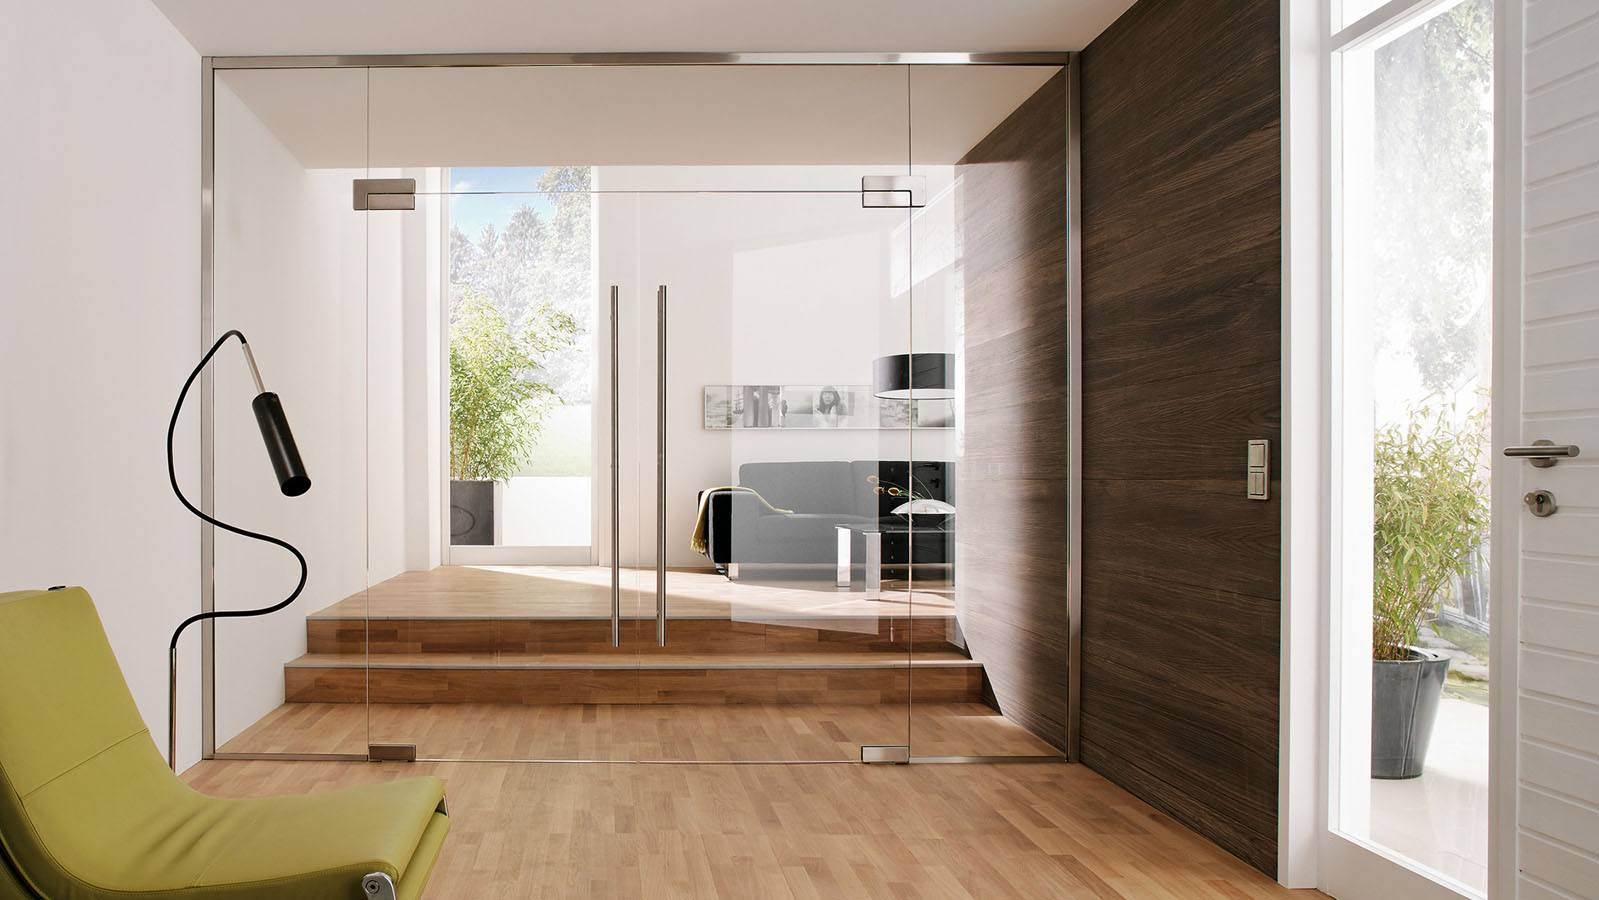 Interior Glass Doors: Best Design Ideas and Application. Laminated floor and planked wall